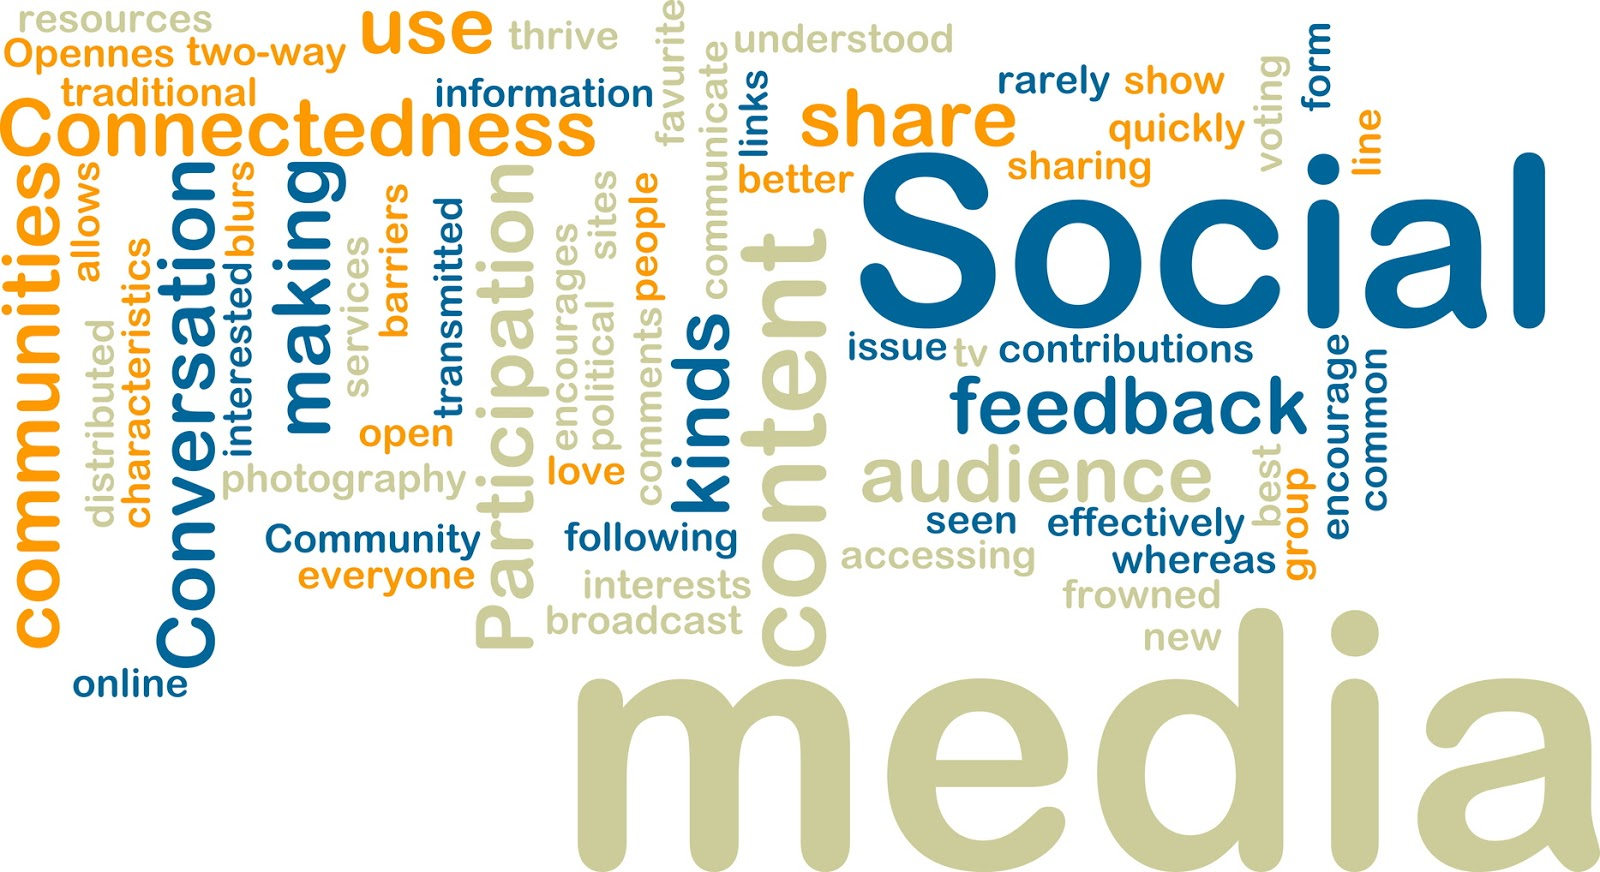 Definition of social media social media for Soil media definition